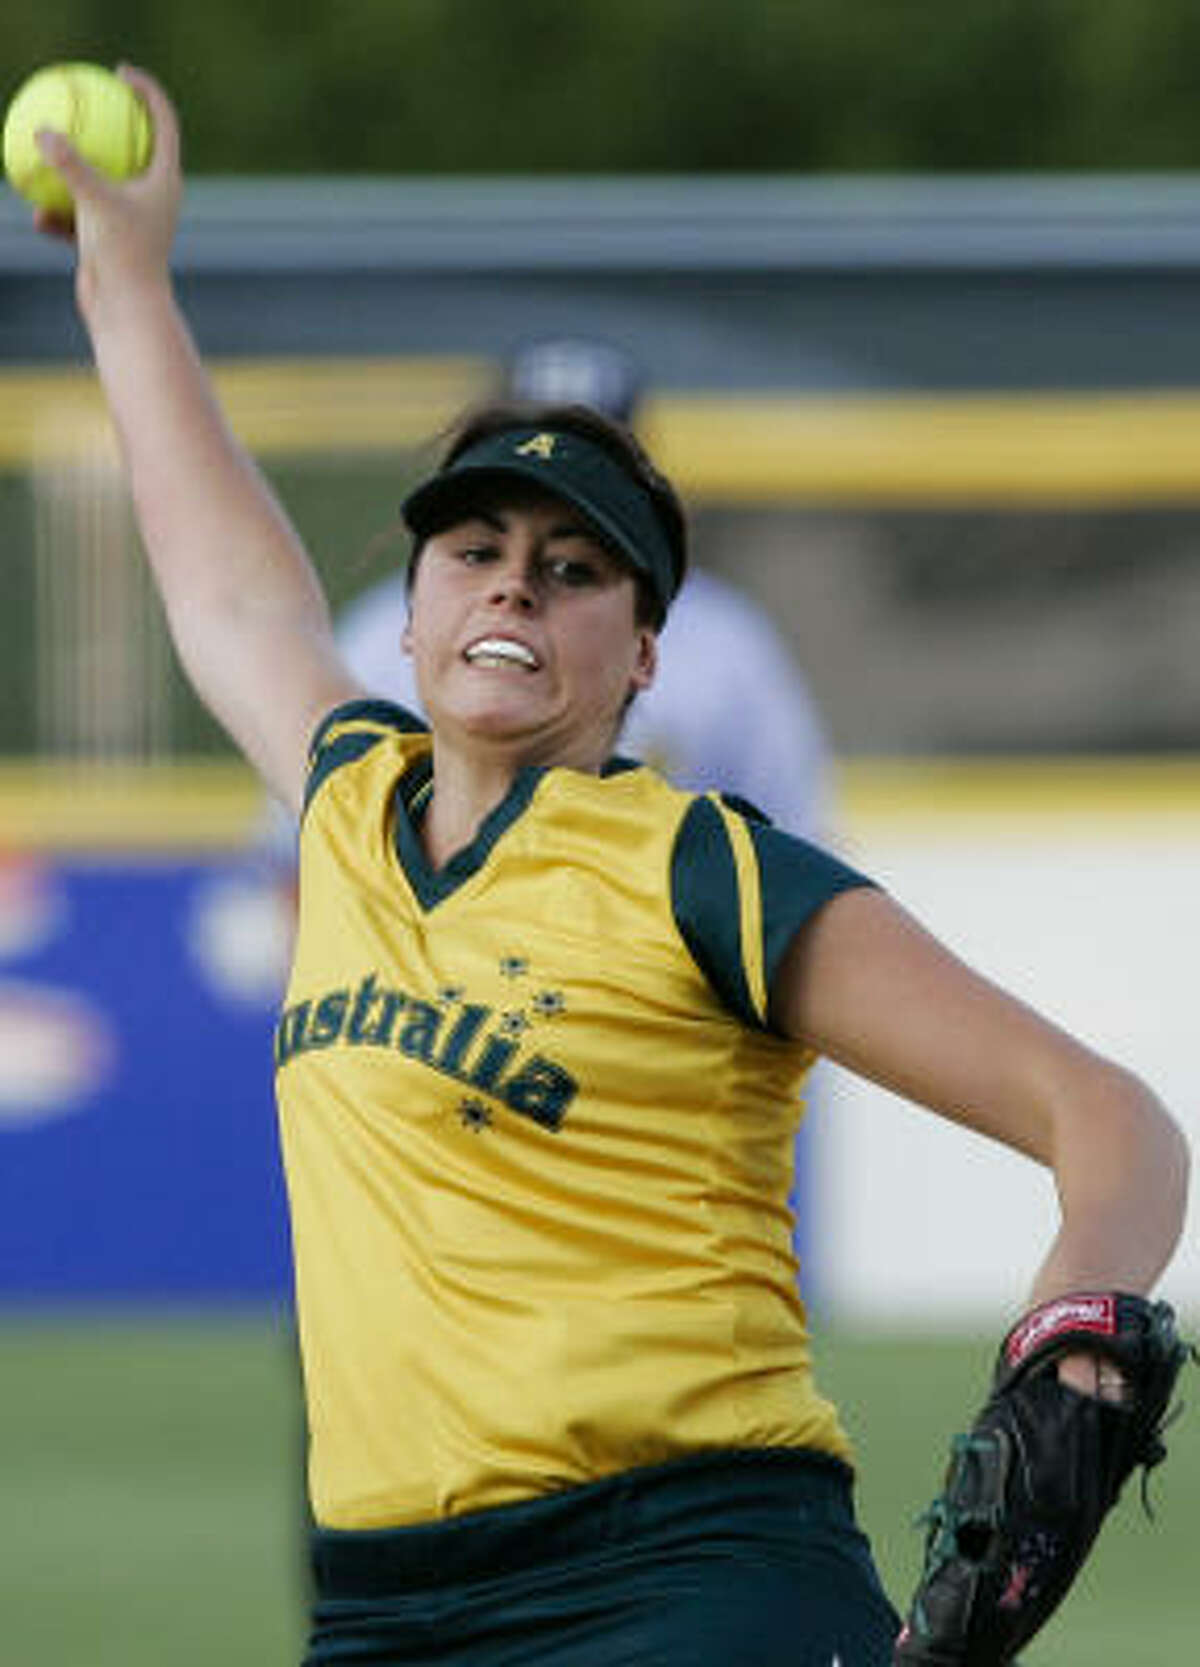 World Cup Final: United States 3, Australia 1 Australia's Justine Smethurst pitches against the U.S. in the first inning.